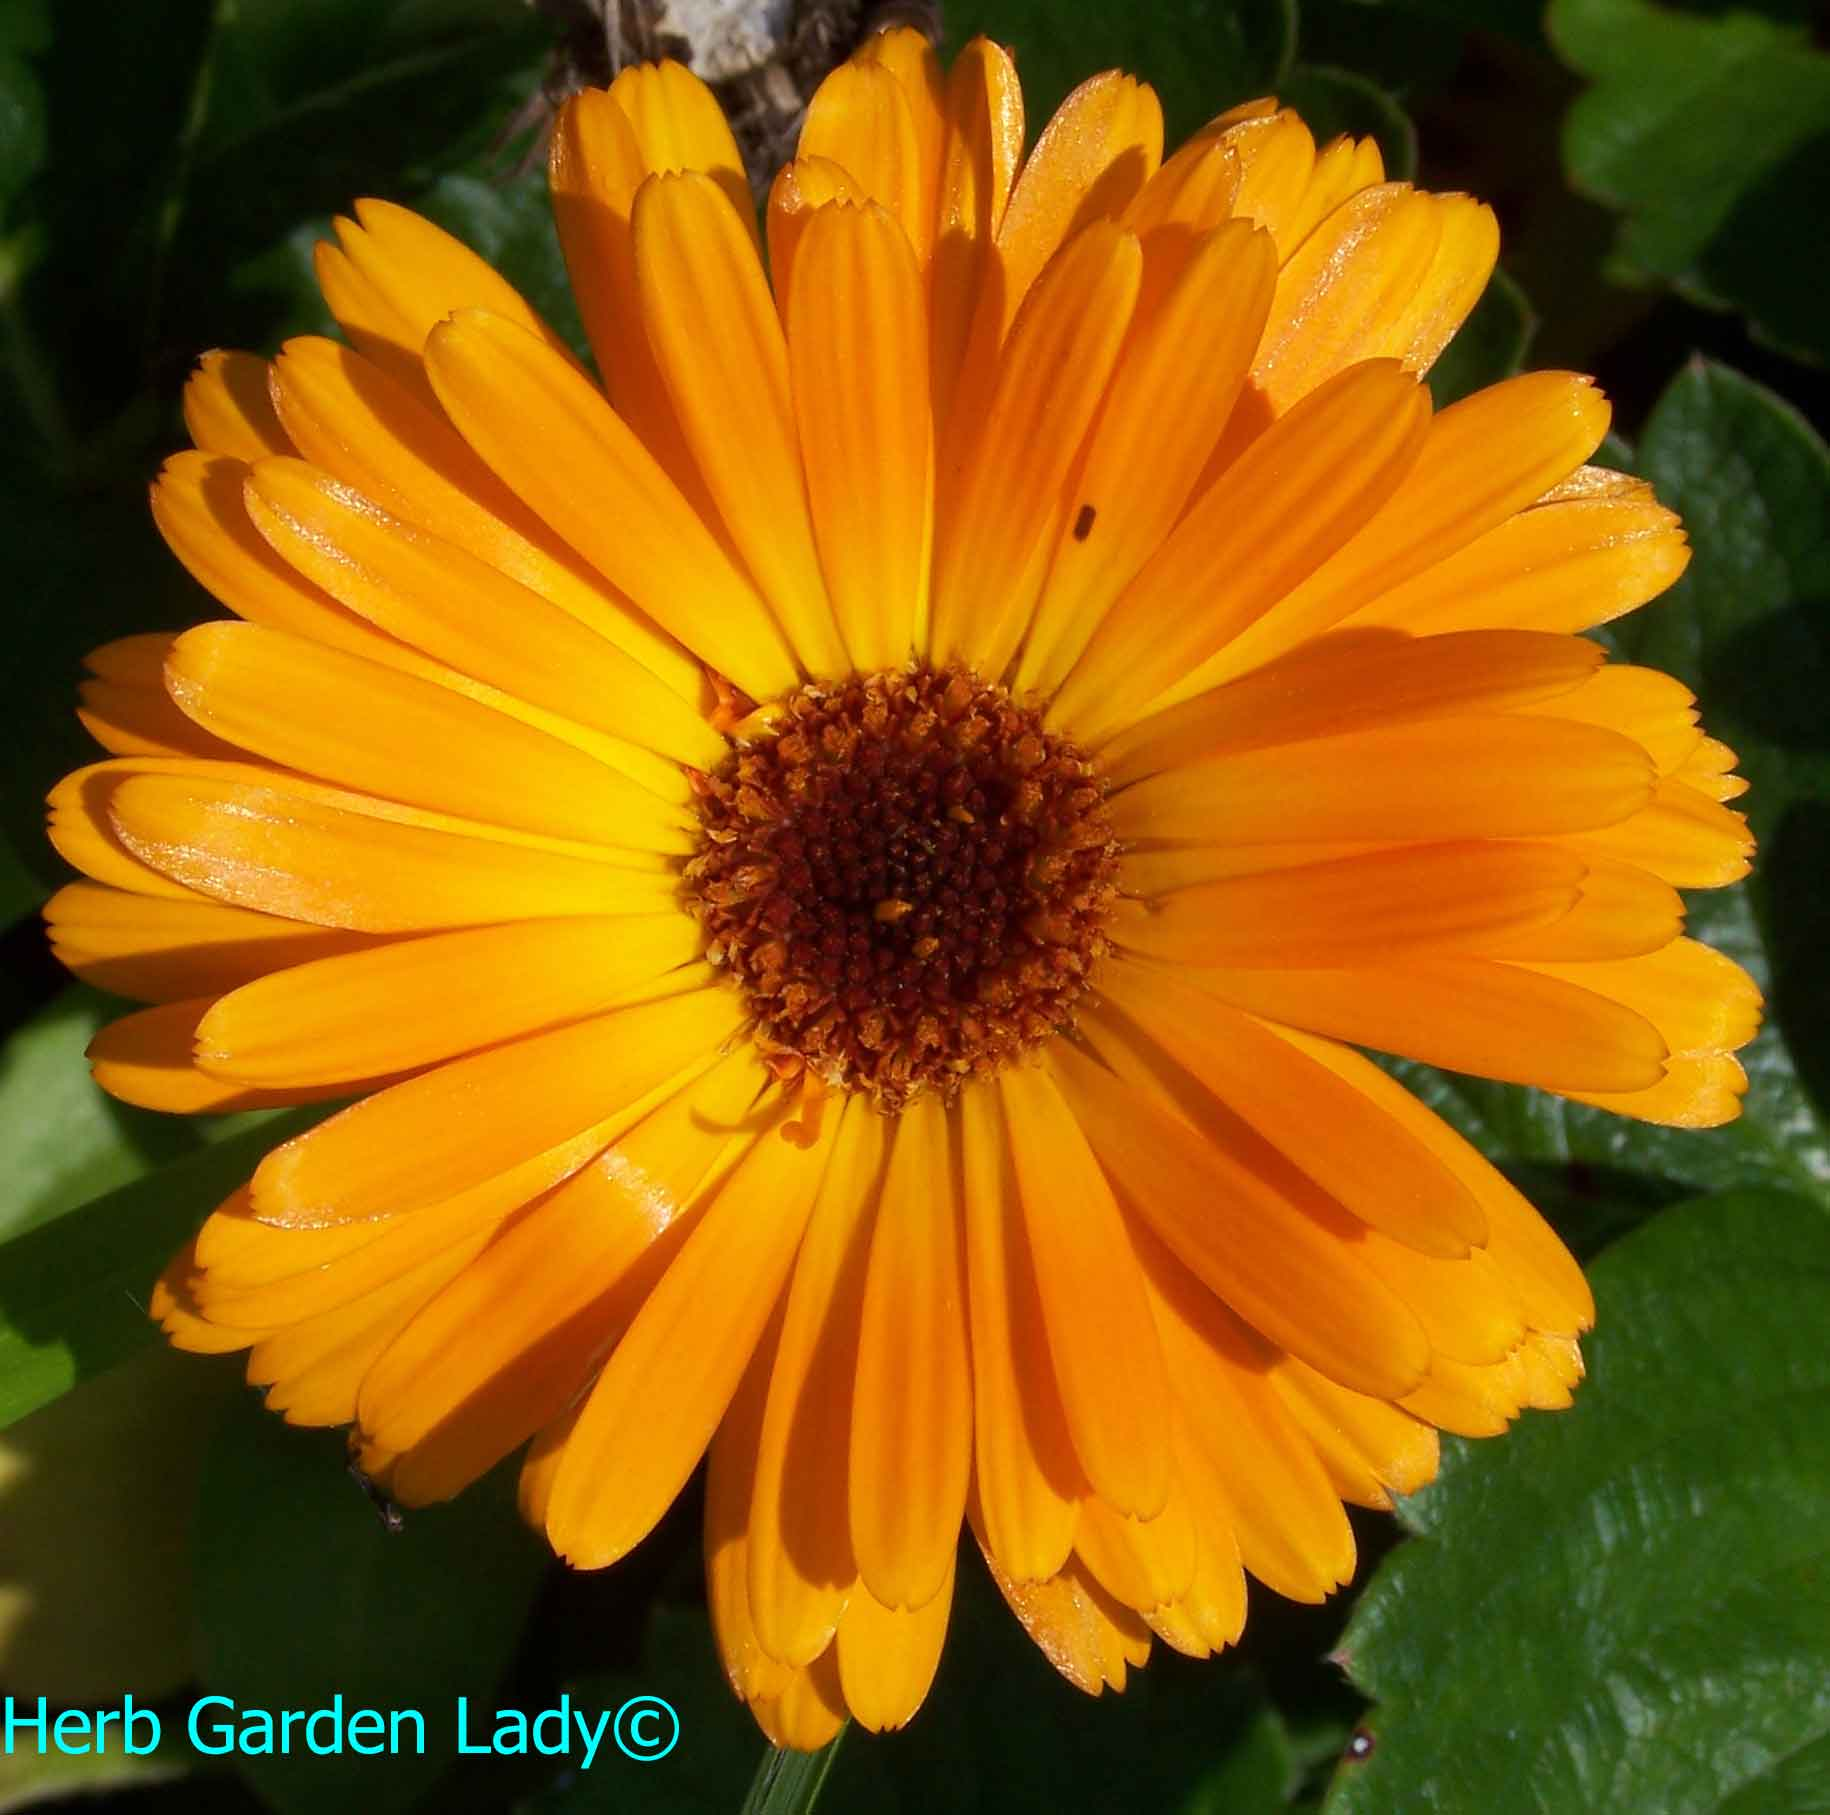 Calendula herb gives a delicate flavor to herb bread, soups, cheese and is used as a saffron substitute.